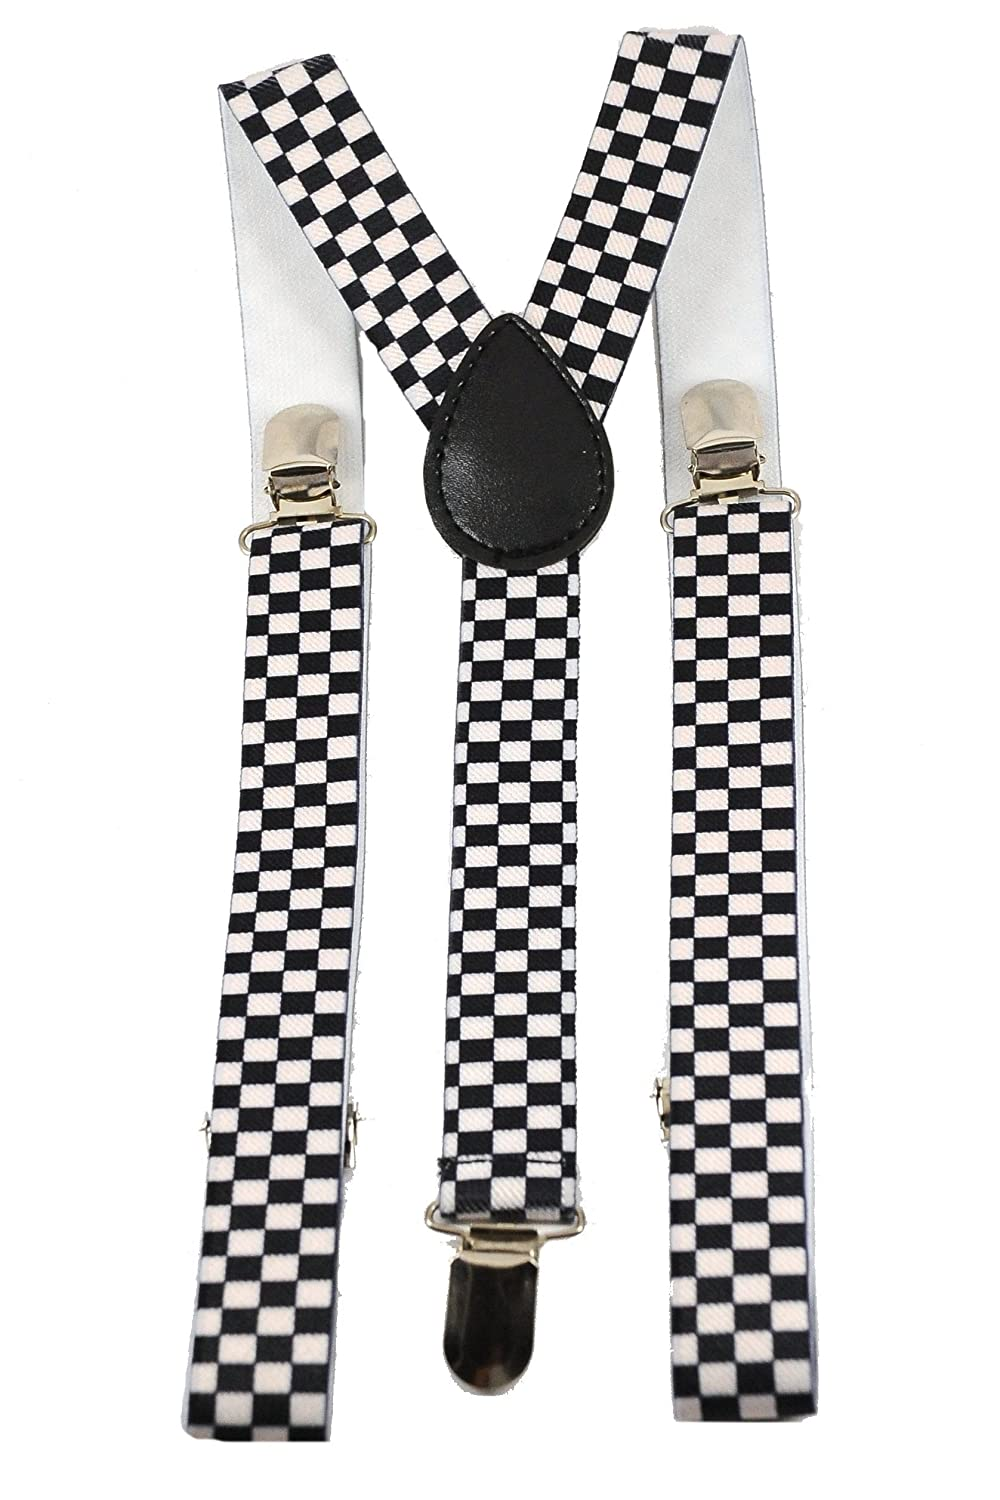 Youth Black and White Checkered Suspenders